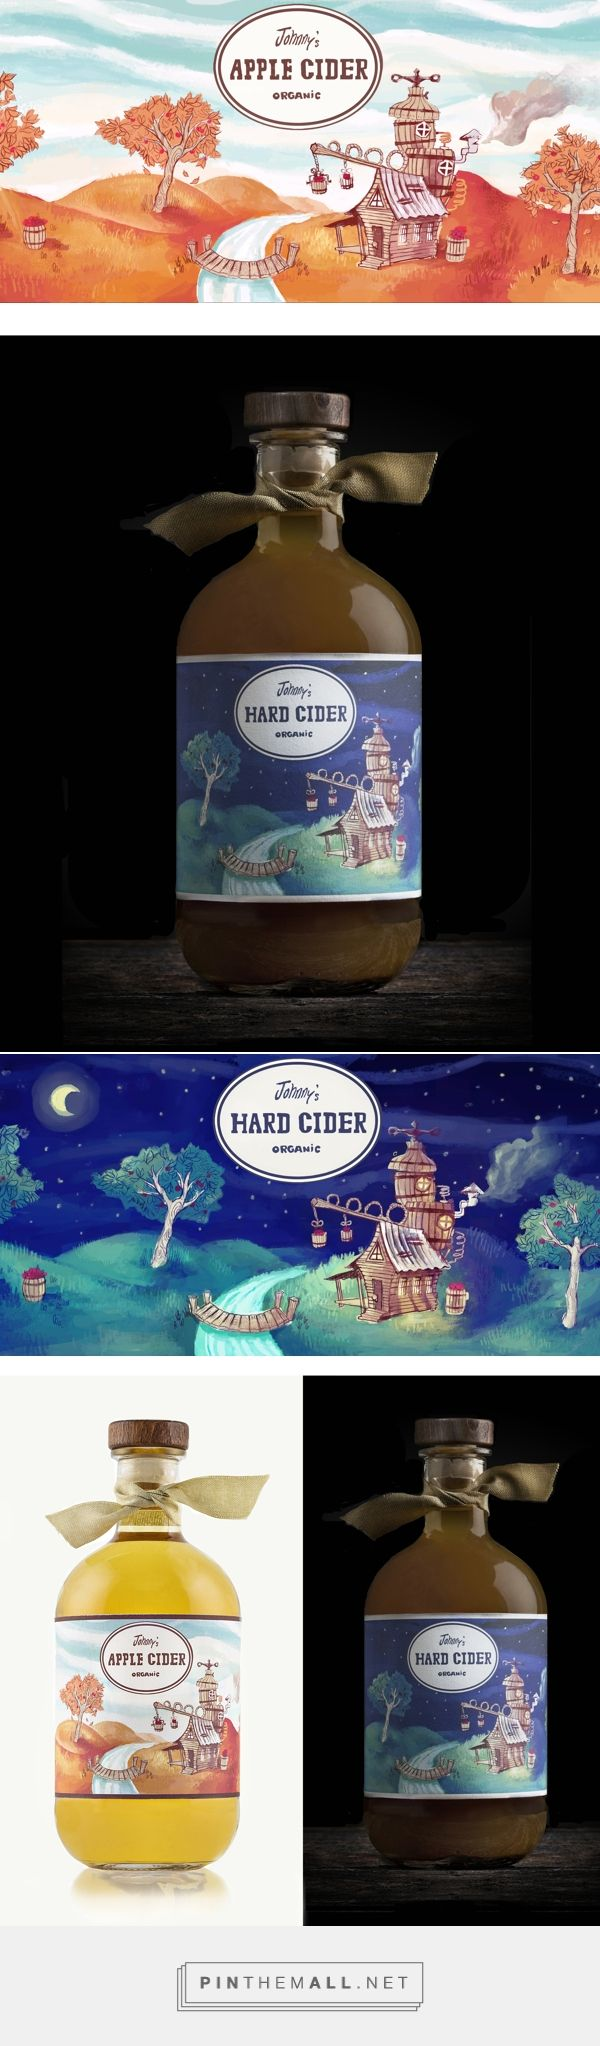 Johnny's Organic Apple Cider & Hard Cider on Behance via Dylan Wright curated by Packaging Diva PD. Pretty whimsical packaging bottle labeling for apple cider and hard cider products.